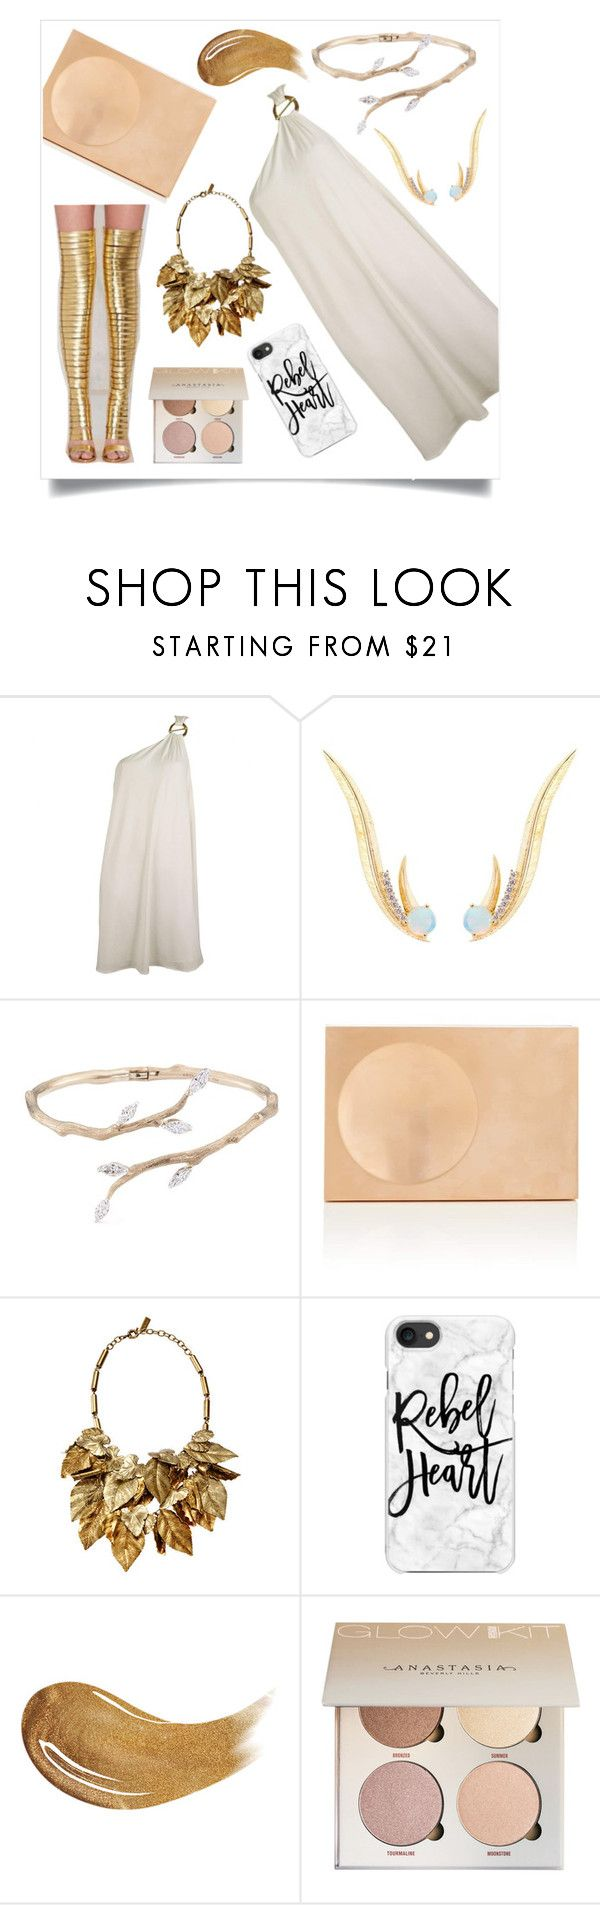 """""""golden godes"""" by hschommer on Polyvore featuring Jeffrey Campbell, Elie Tahari, Daou, Anyallerie, Lee Savage, Etro, Casetify and Too Faced Cosmetics"""